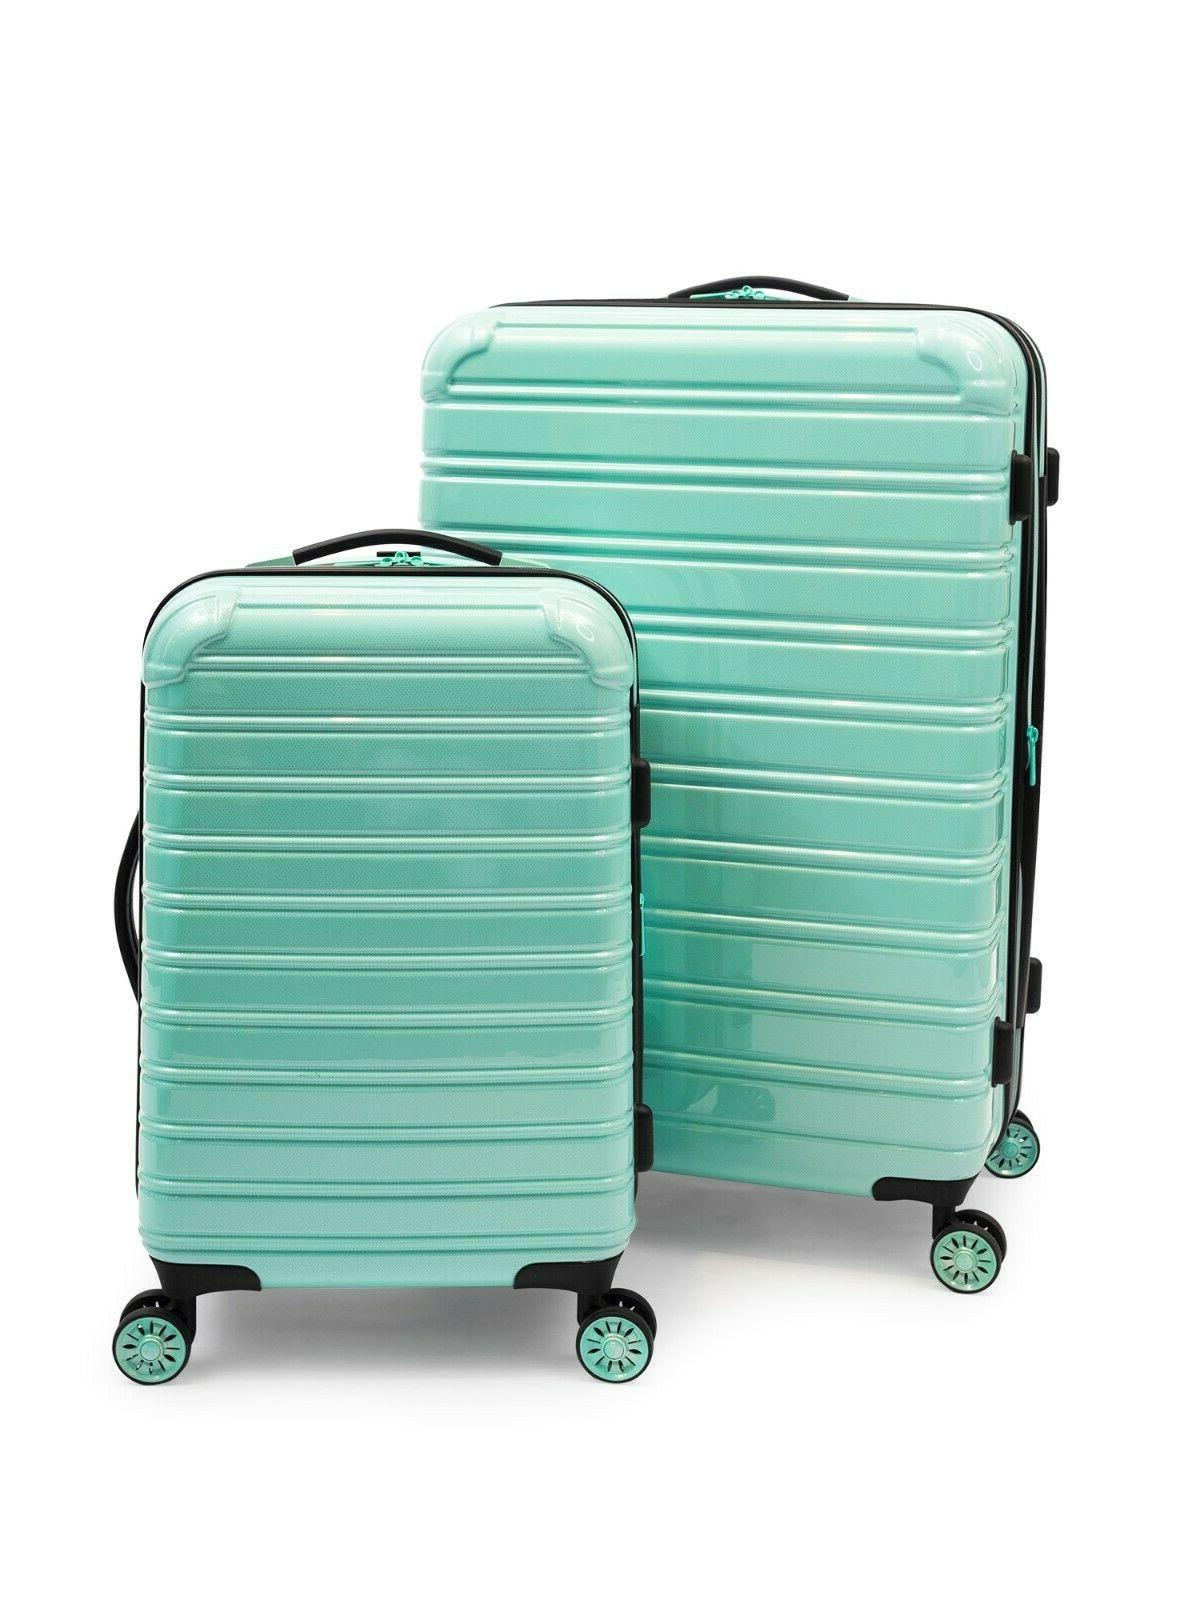 iFLY Hardside Fibertech Luggage, 2 Set